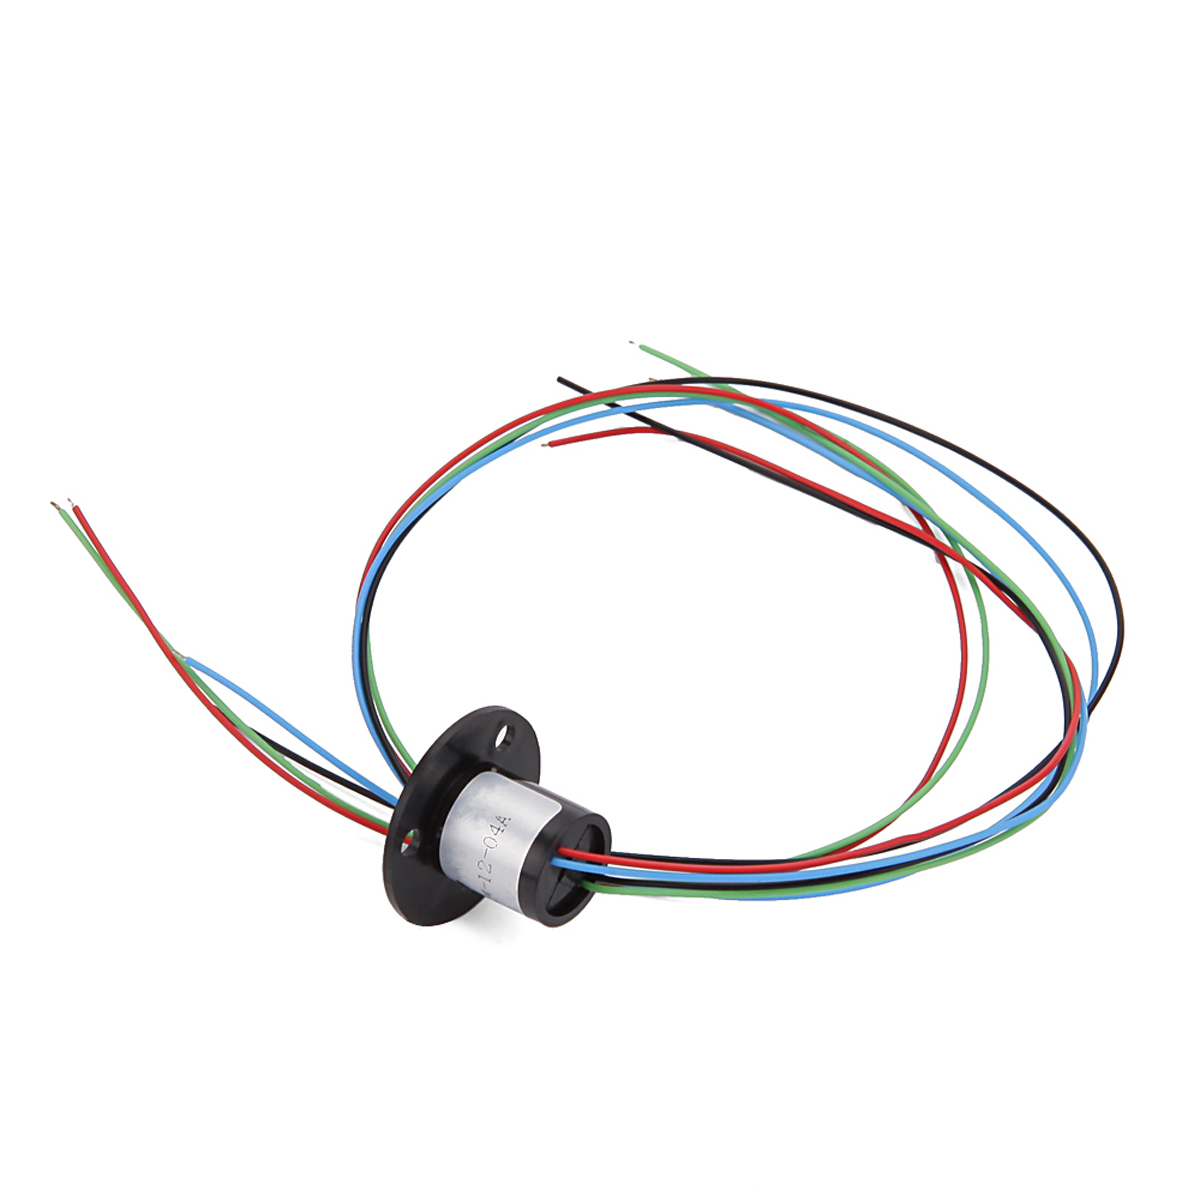 1.5A 240V VC / DC 250rpm Micro Capsule Slip Ring with 4 Wires for Monitor and Robot